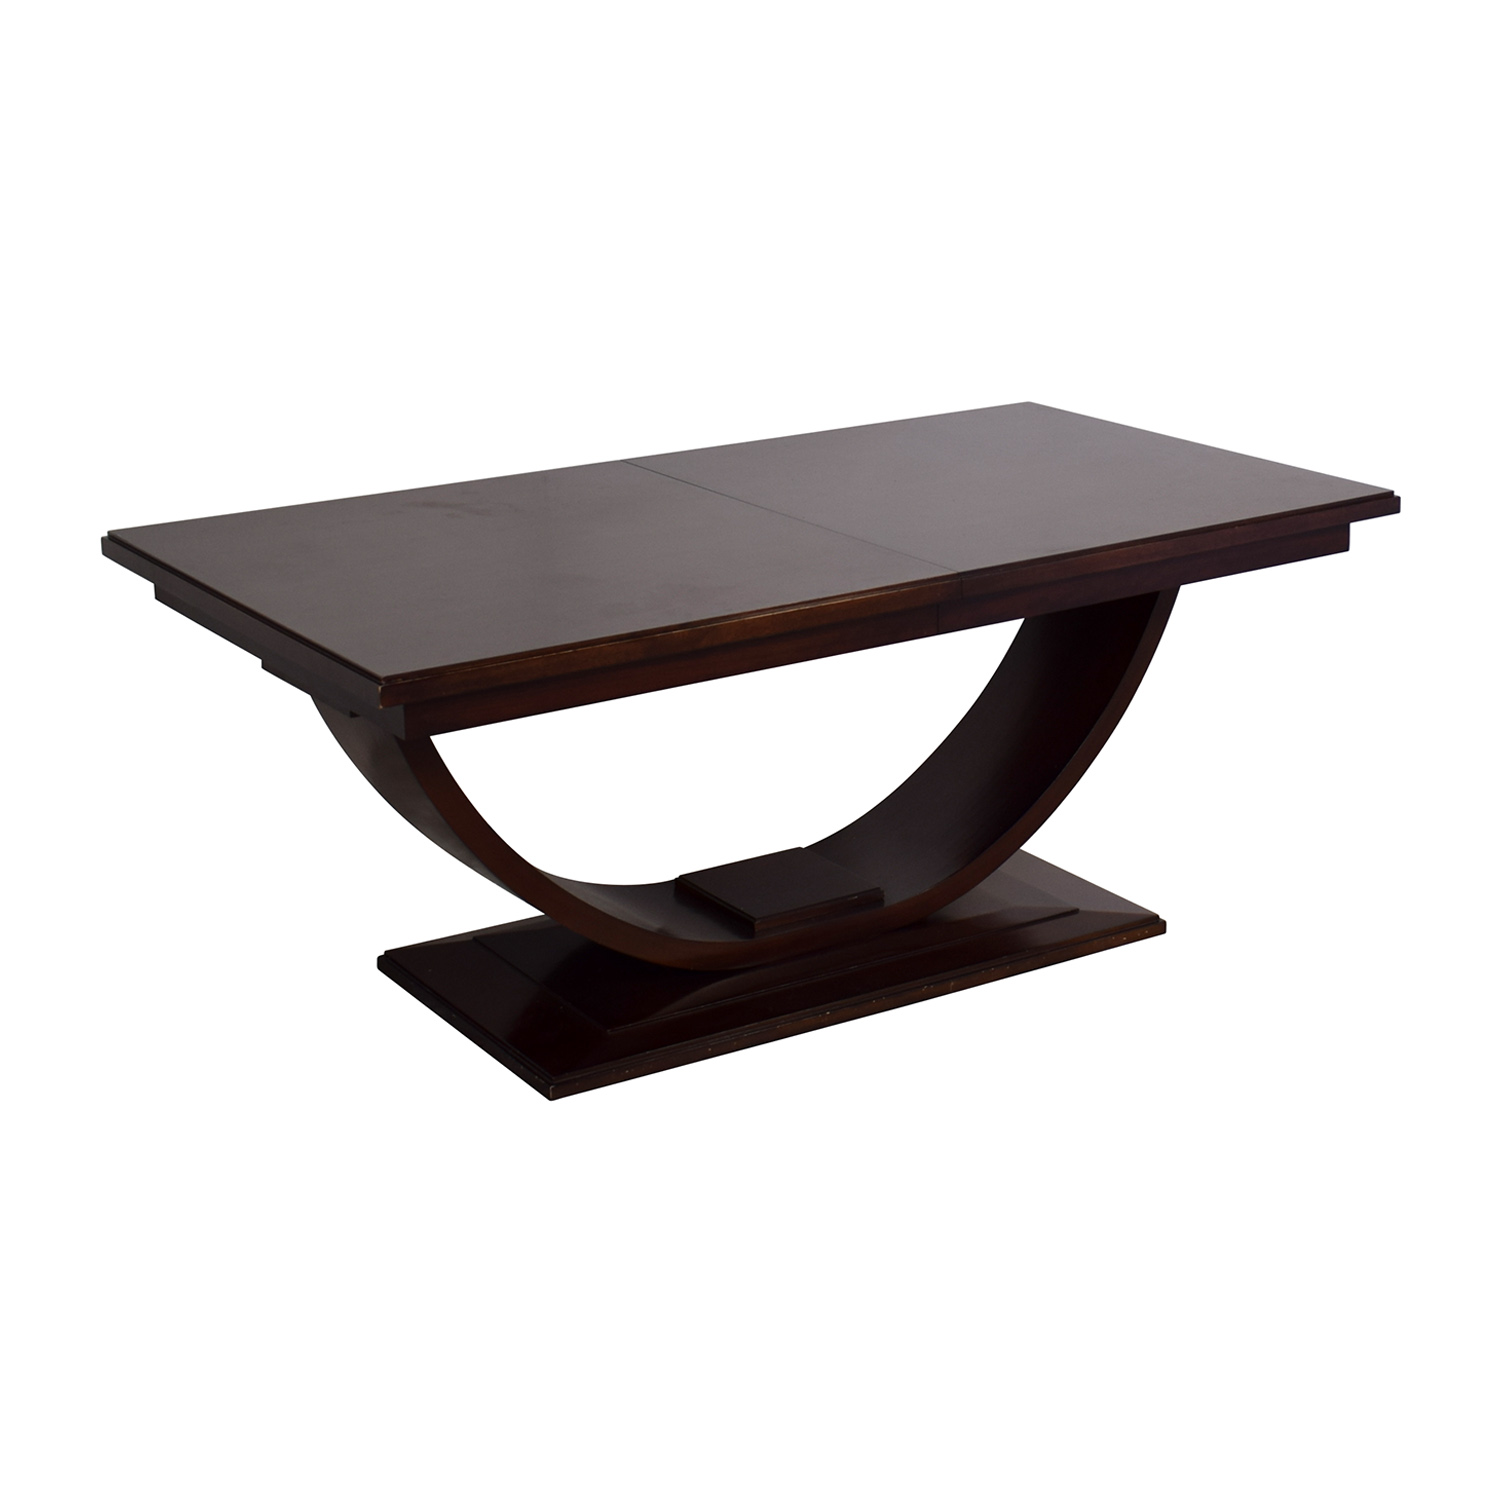 Z Gallerie Z Gallerie Munich Dining Table coupon